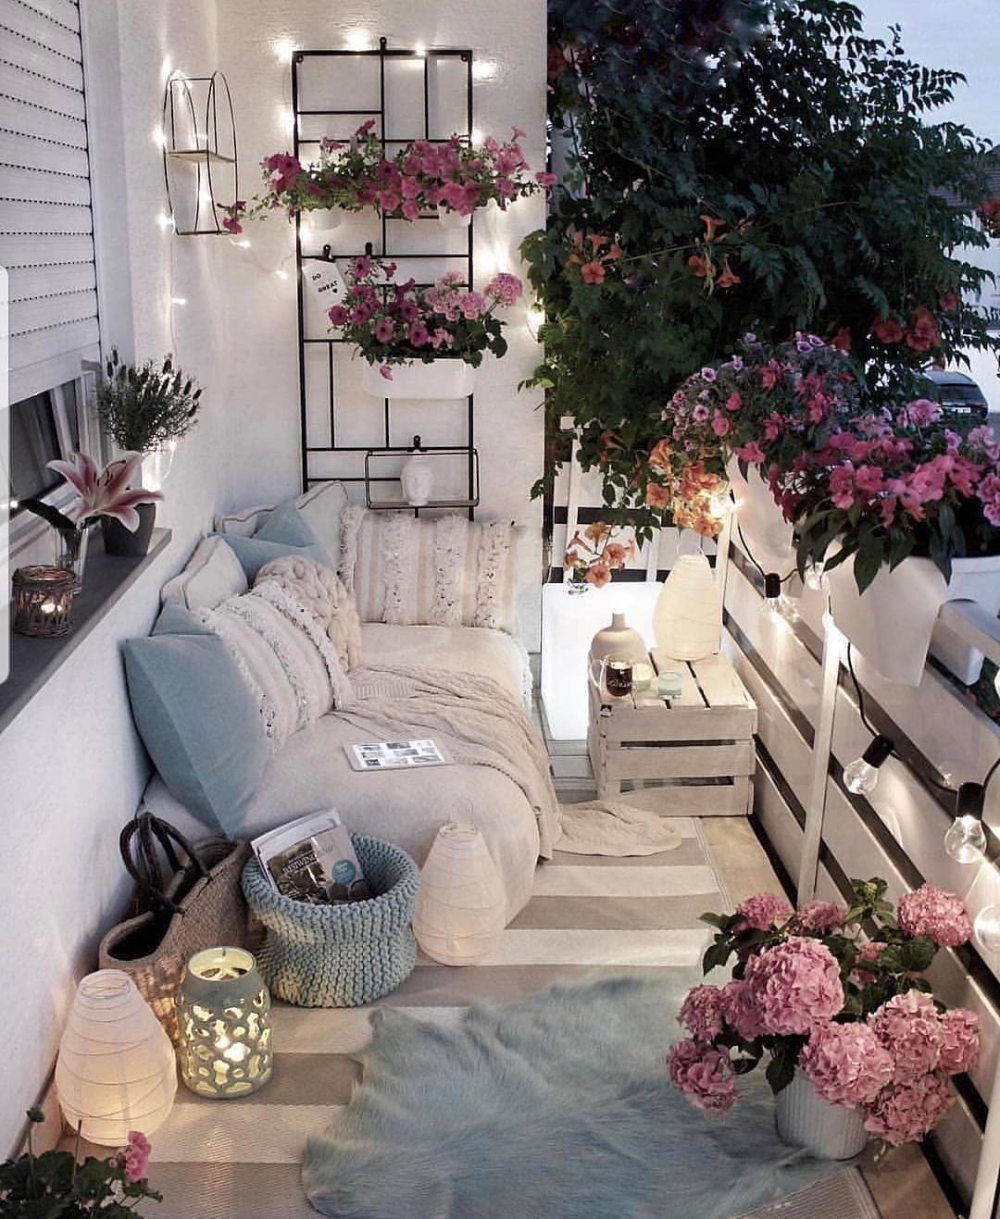 Creating a Home Oasis – Top 10 Small Balcony Ideas